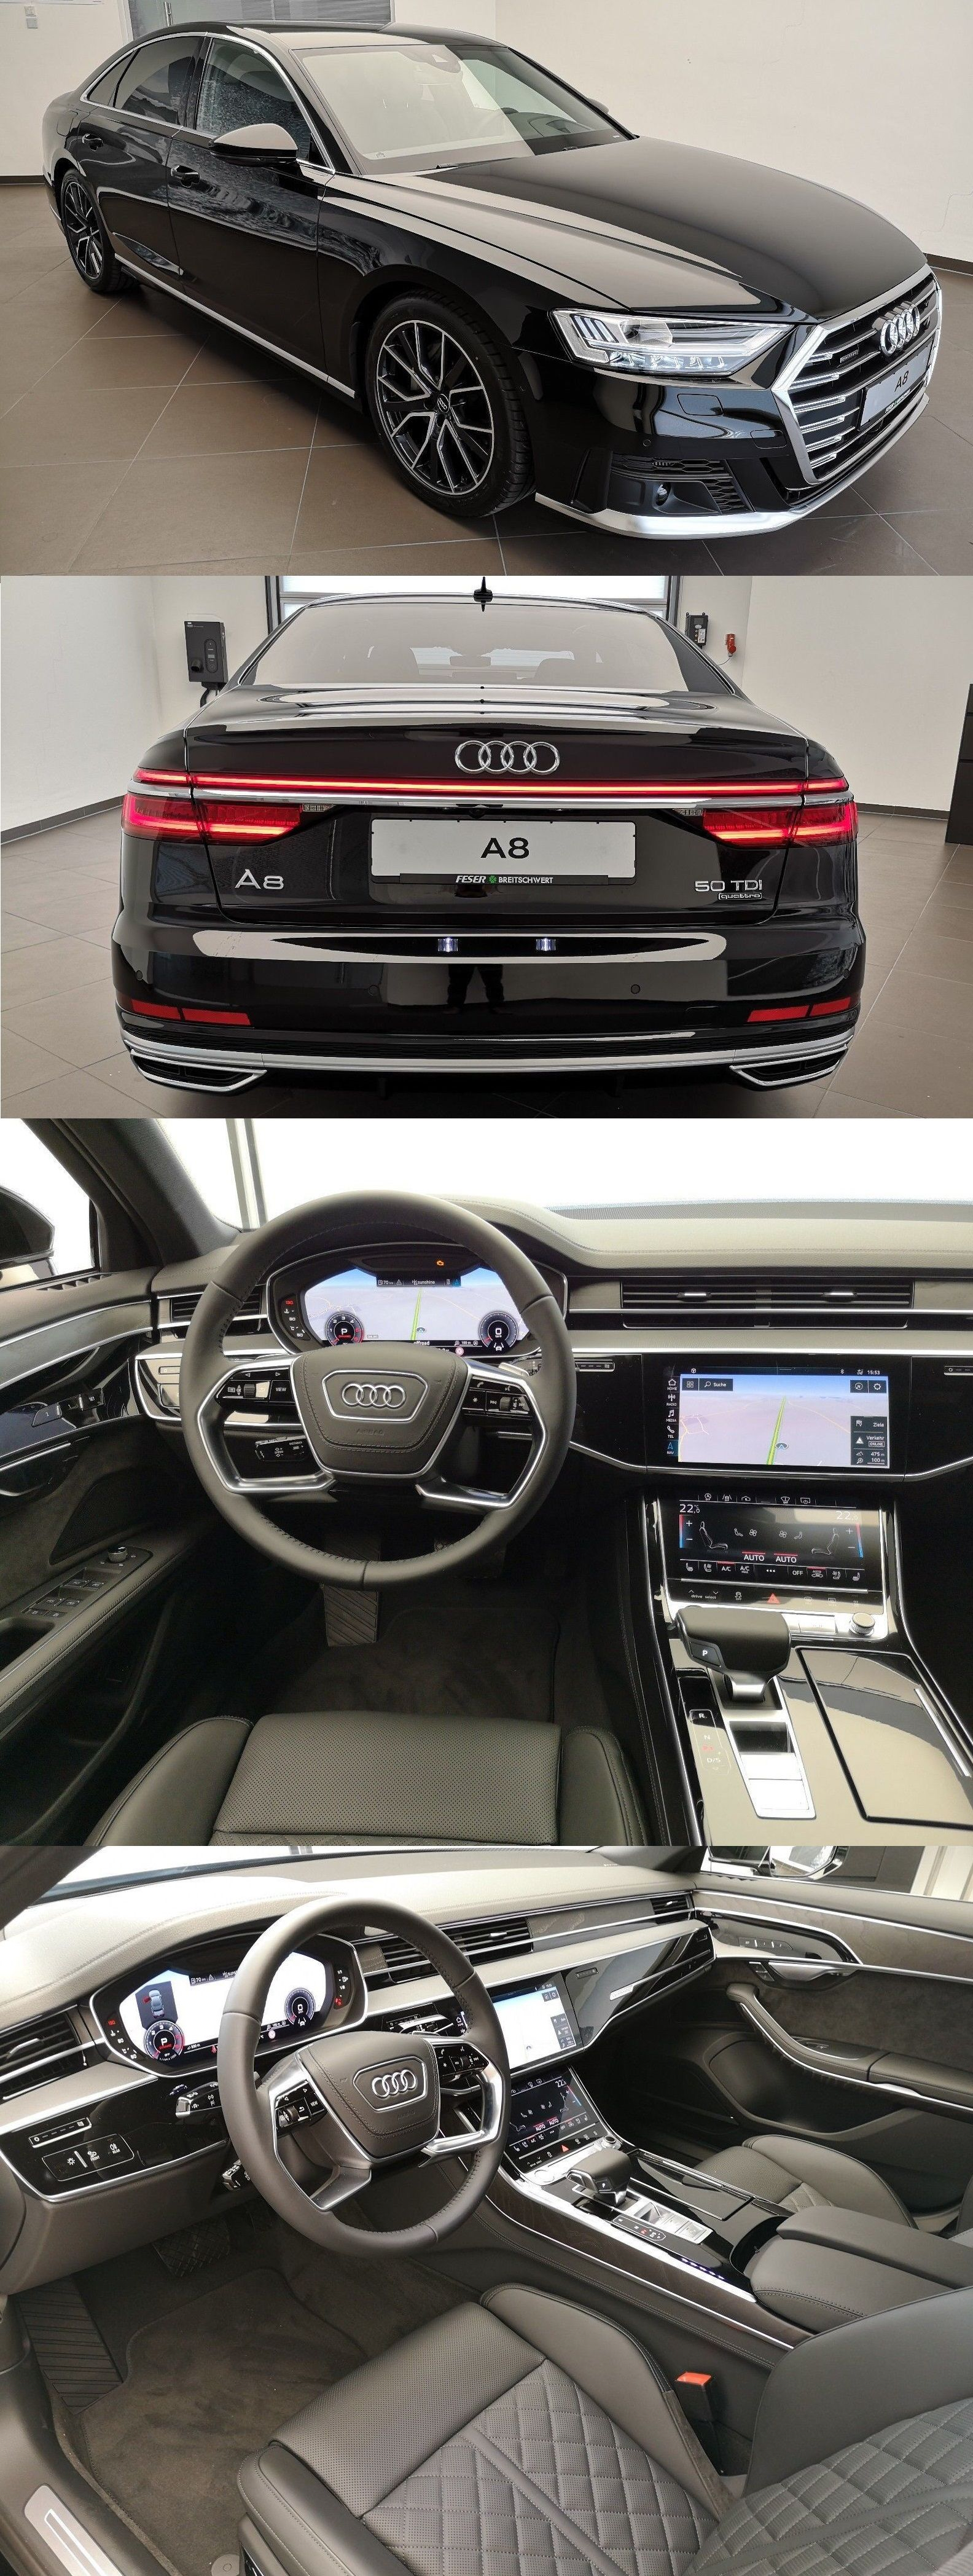 Audi A8 Uber Luxury We Ll Know Sedan Quattro All Wheel Drive And Powerful Engine A 2012 Originally At 80k With 372 Hp Today You Can Audi Cars Audi A8 Audi